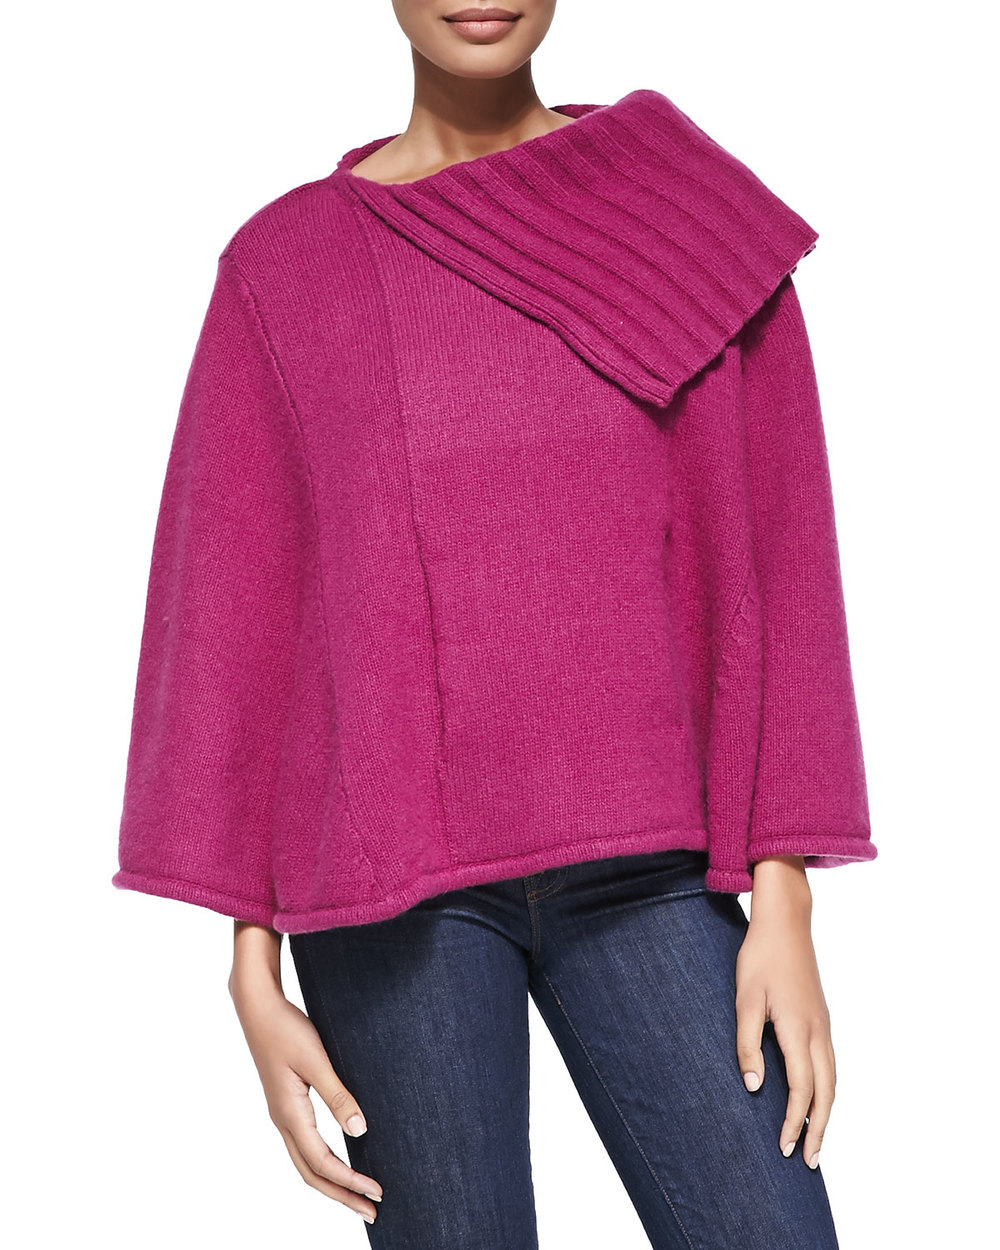 PORTOLANO CASHMERE PONCHO IN PLUMBERRY was $365 now $265.50